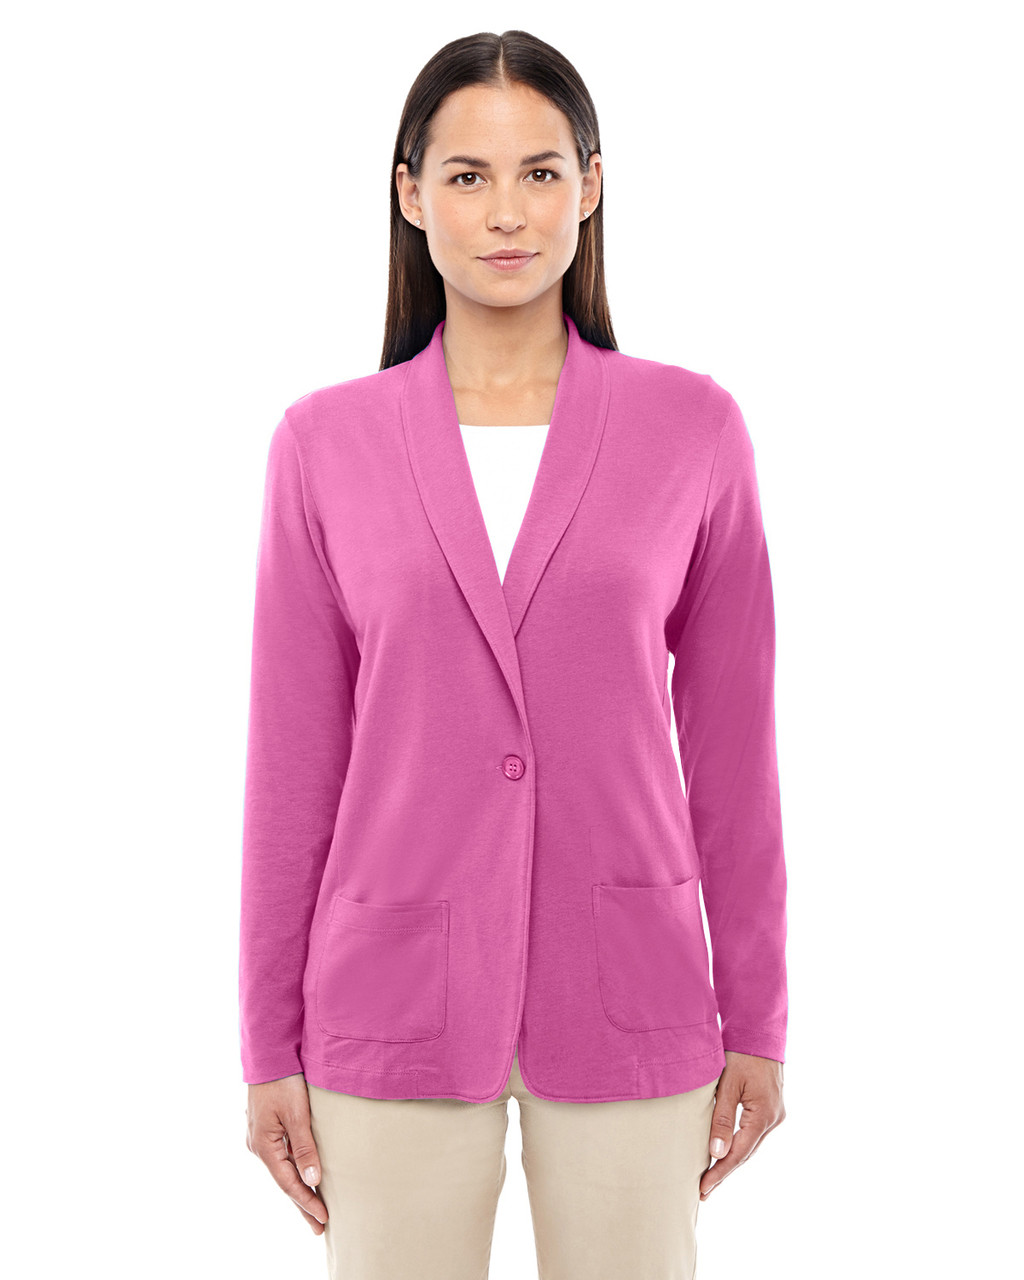 Charity Pink - DP462W Devon & Jones Ladies' Perfect Fit Shawl Collar Cardigan